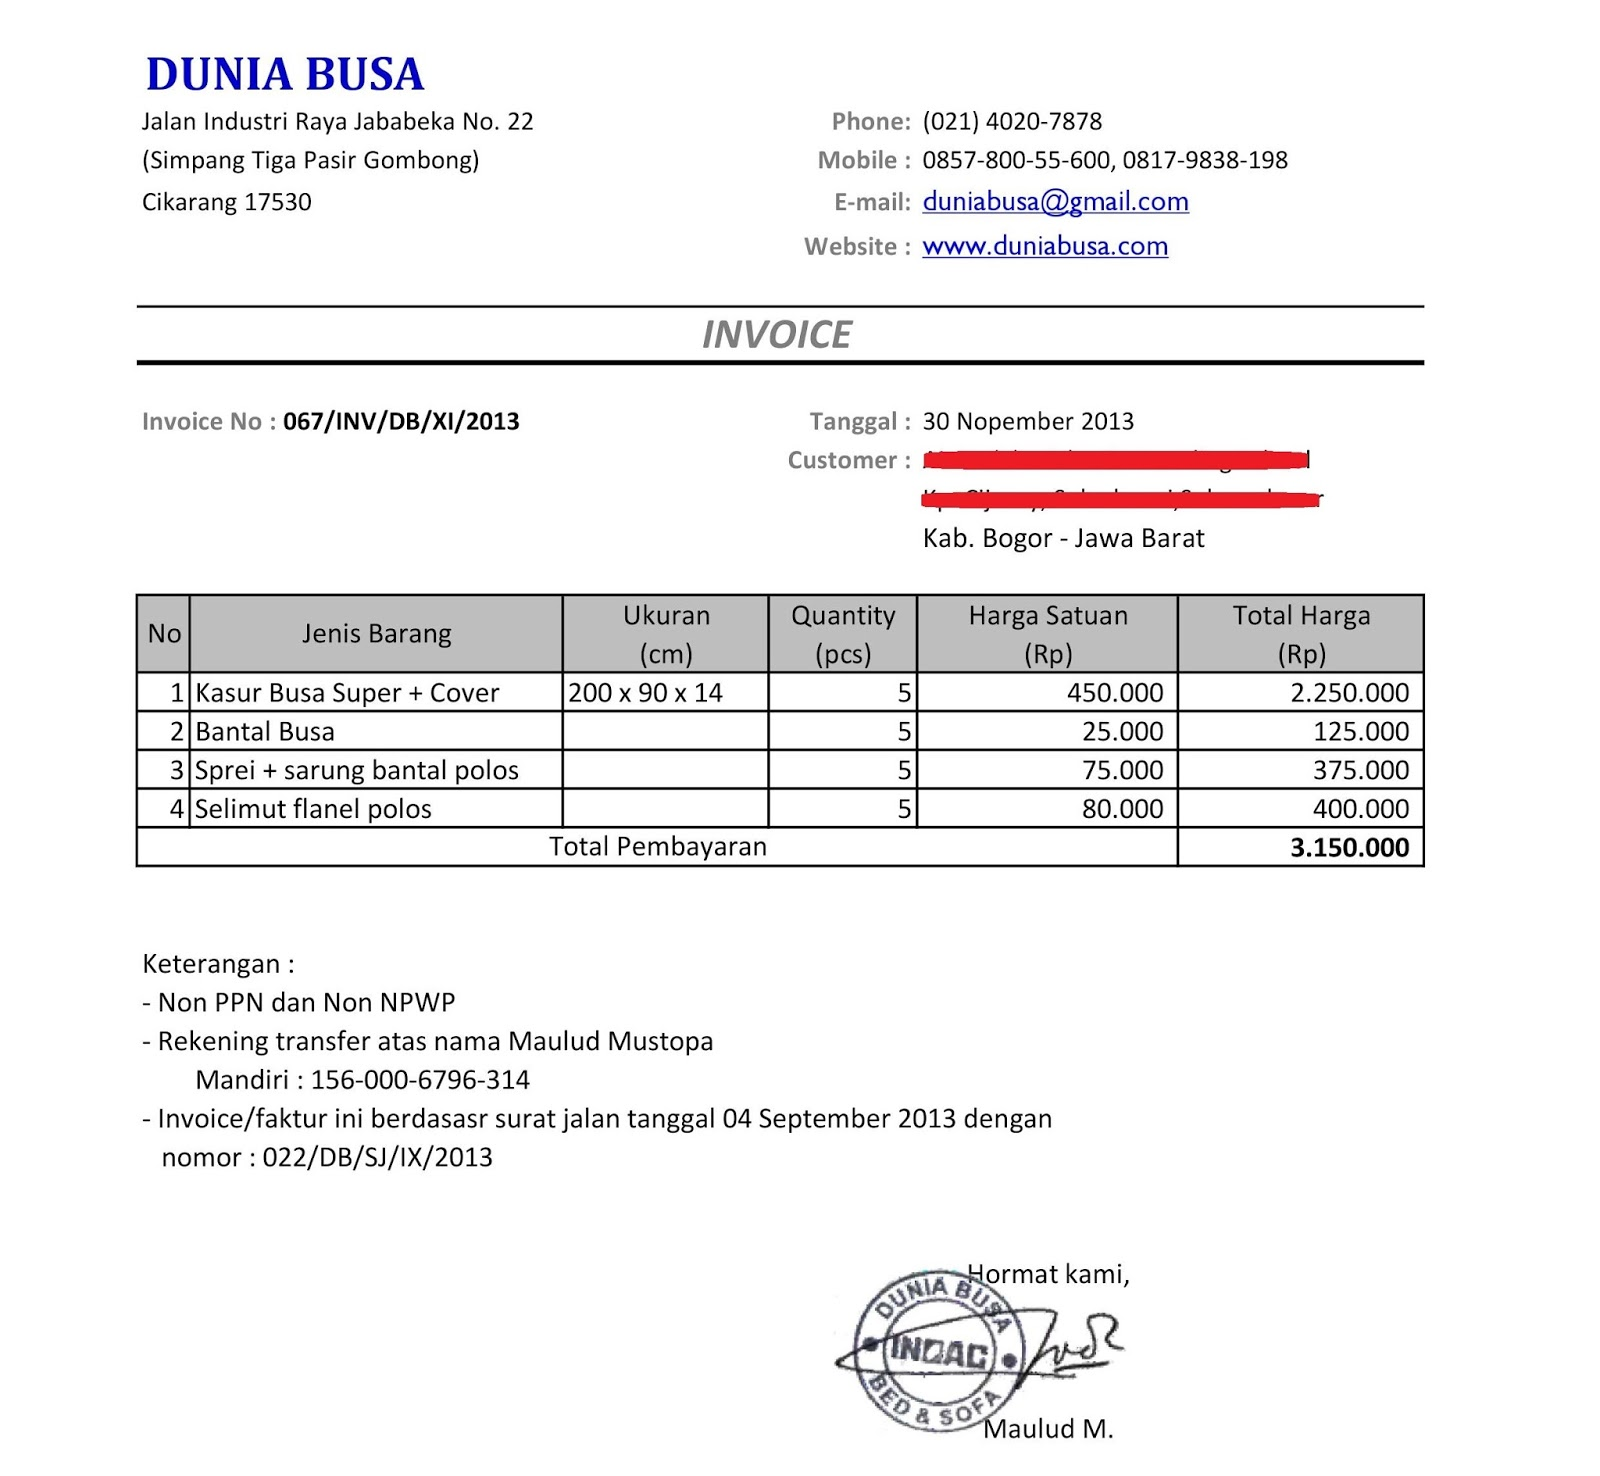 Musclebuildingtipsus  Nice Free Invoice Online  Create Invoice Online  Invoice Template  With Glamorous Contoh Format Invoice Atau Surat Tagihan  Brankas Arsip  Free Invoice Online With Endearing Hillstone Invoice Manager Also Basic Invoice Template Uk In Addition Excel  Invoice Template Free Download And Cash Invoice Definition As Well As Express Invoice Code Additionally Pay With Invoice From Sklepco With Musclebuildingtipsus  Glamorous Free Invoice Online  Create Invoice Online  Invoice Template  With Endearing Contoh Format Invoice Atau Surat Tagihan  Brankas Arsip  Free Invoice Online And Nice Hillstone Invoice Manager Also Basic Invoice Template Uk In Addition Excel  Invoice Template Free Download From Sklepco